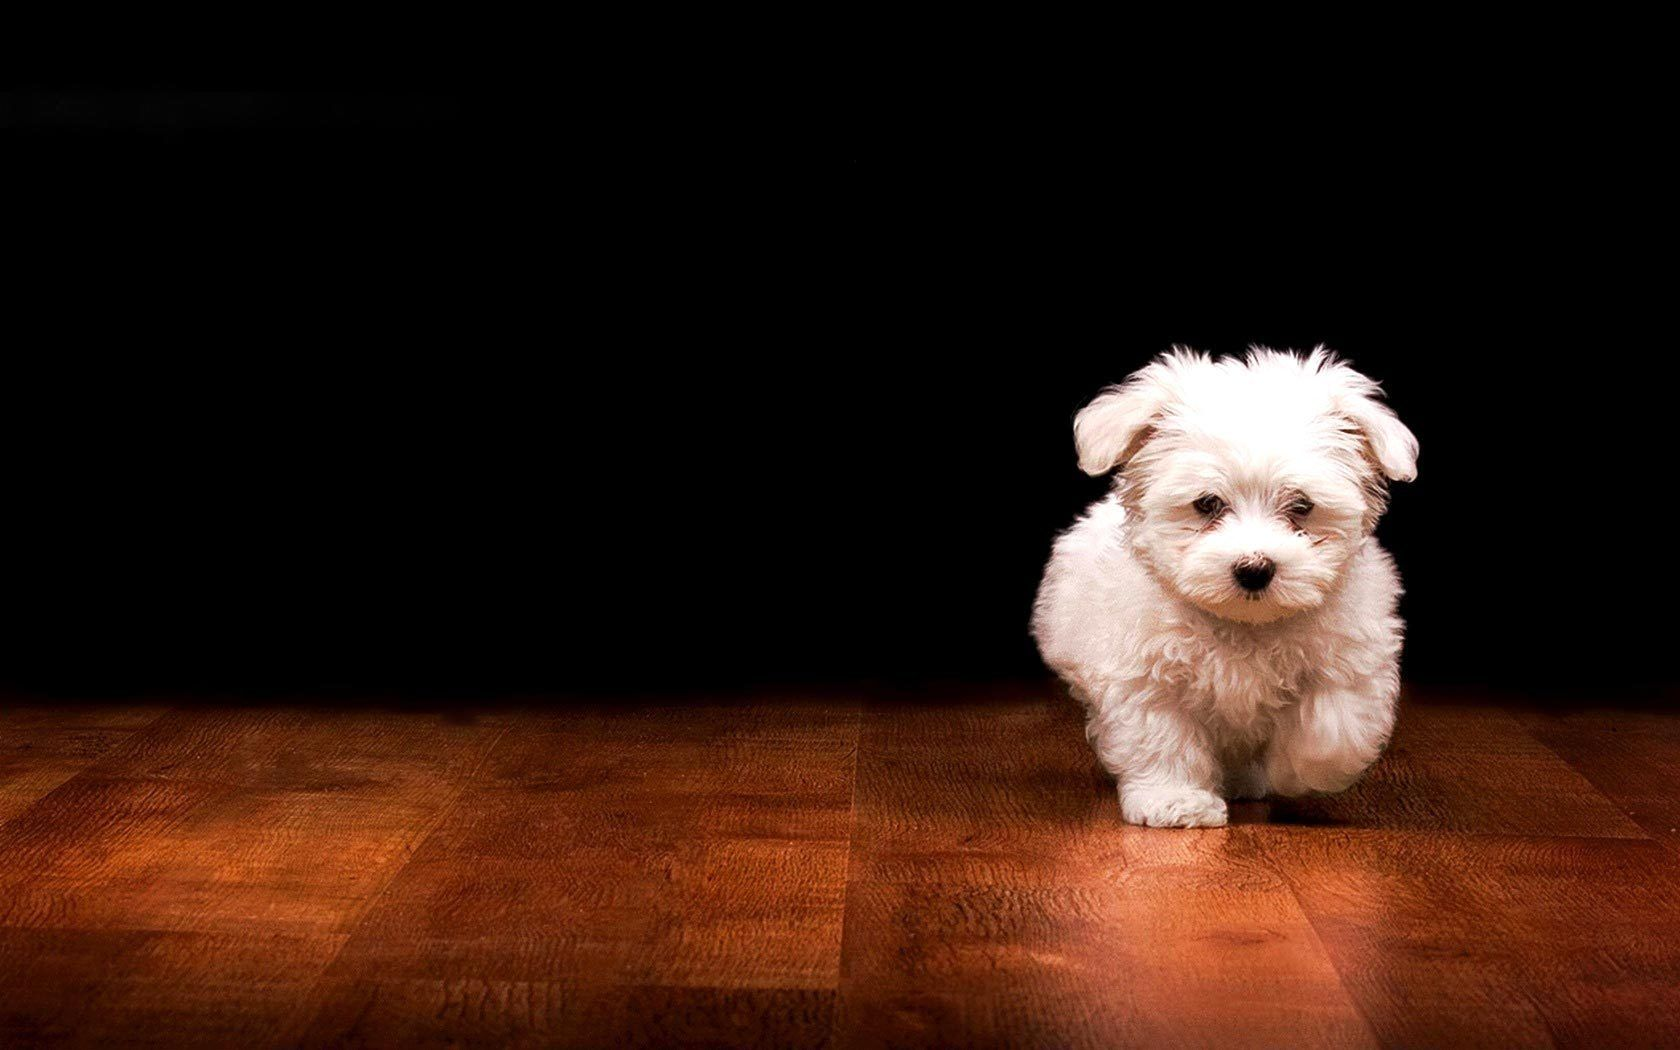 Puppy Wallpaper Mobile For Desktop Wallpaper 1680 X 1050